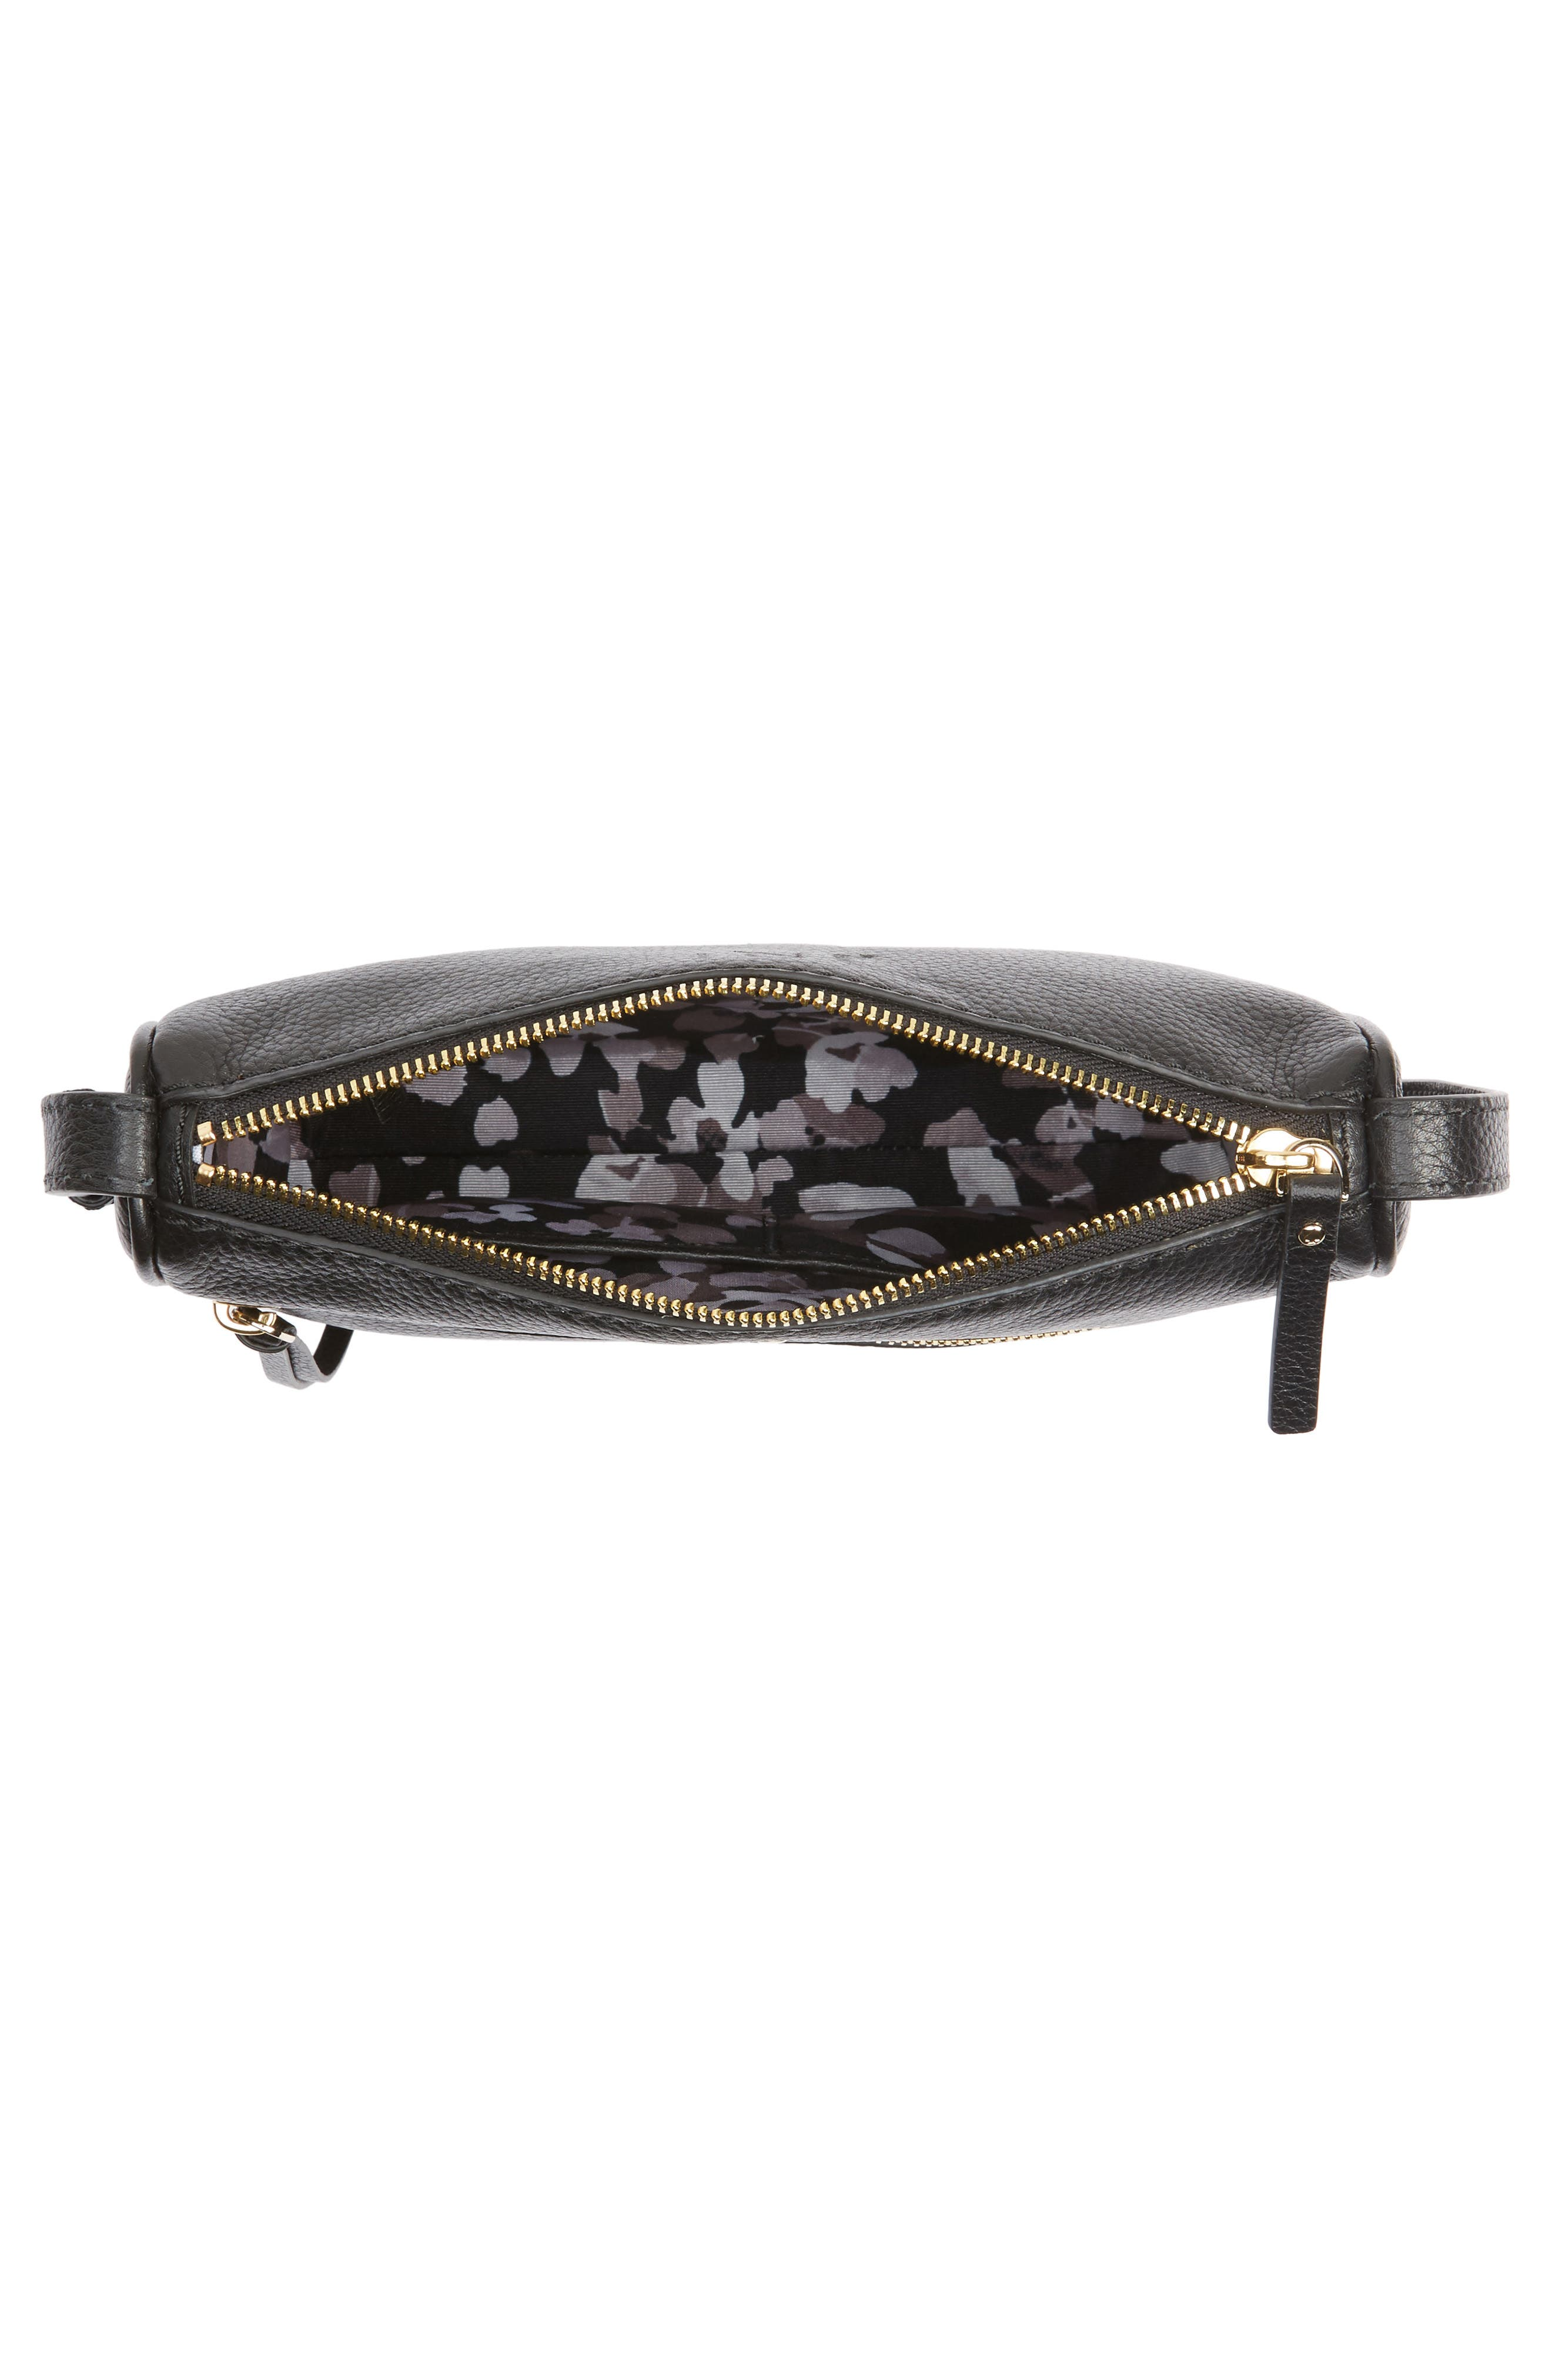 young lane - cayli leather crossbody bag,                             Alternate thumbnail 4, color,                             001